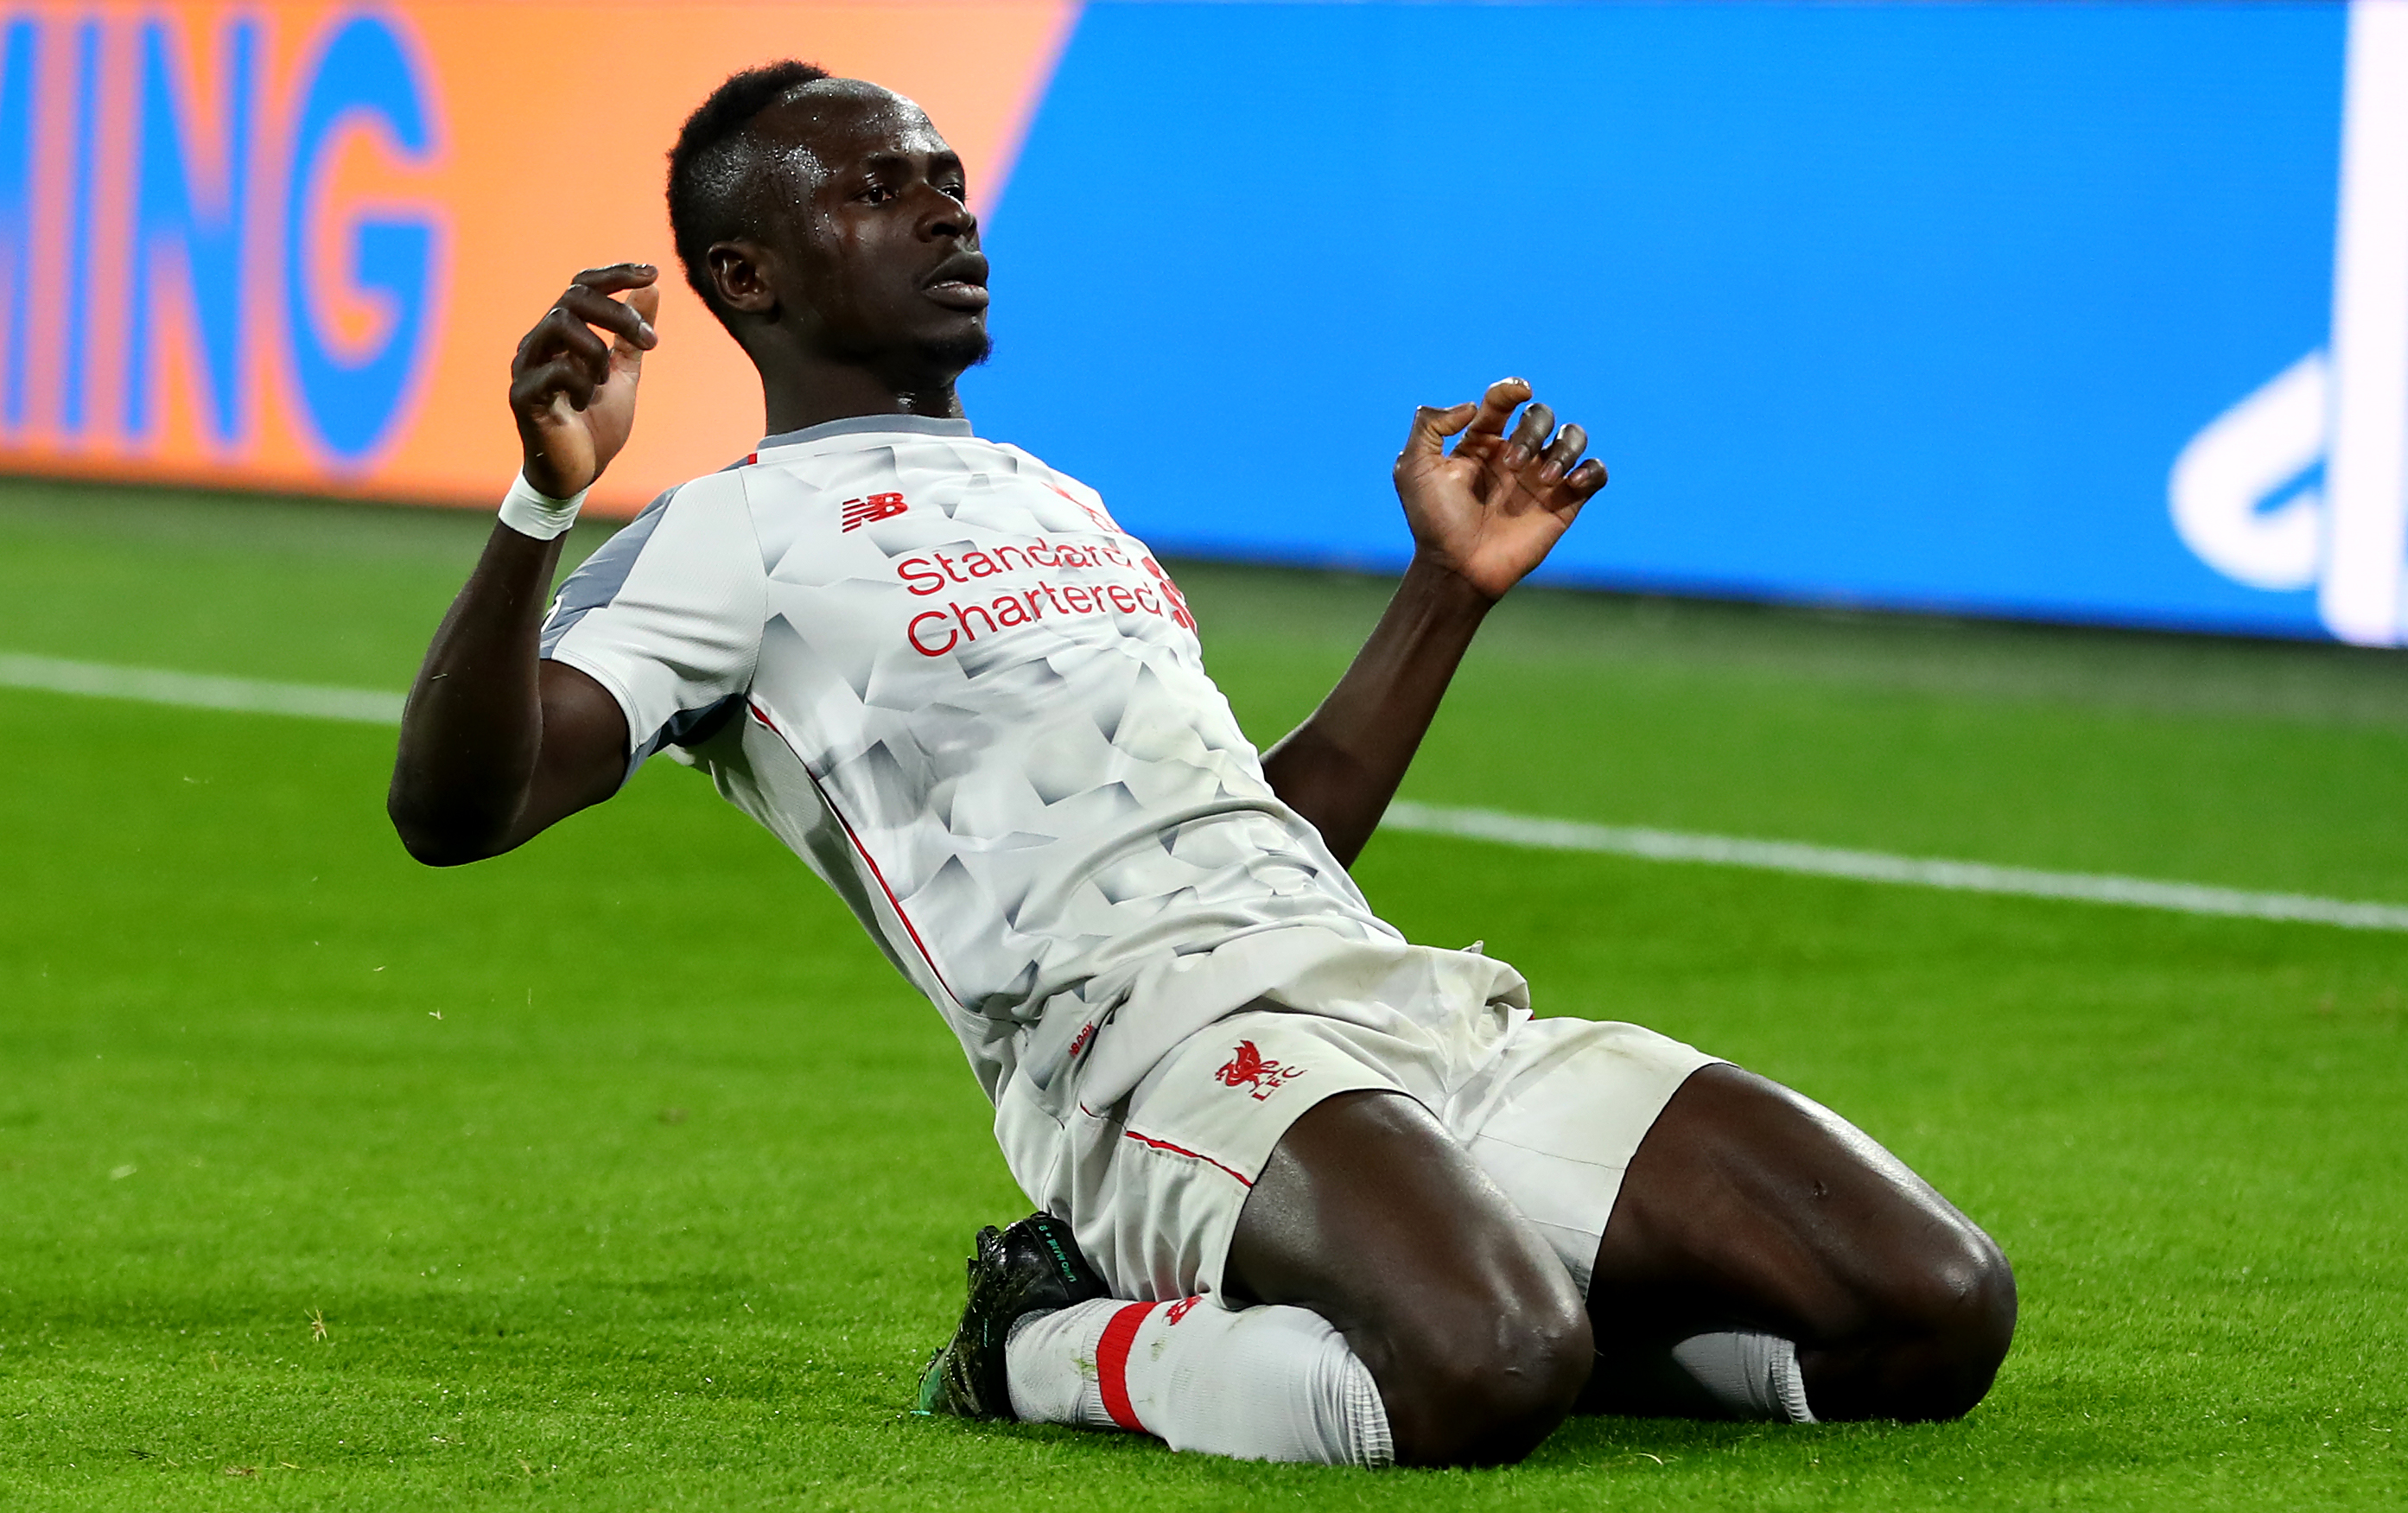 Mane can be the star of the show for Liverpool and their title chase. (Photo by Lars Baron/Bongarts/Getty Images)